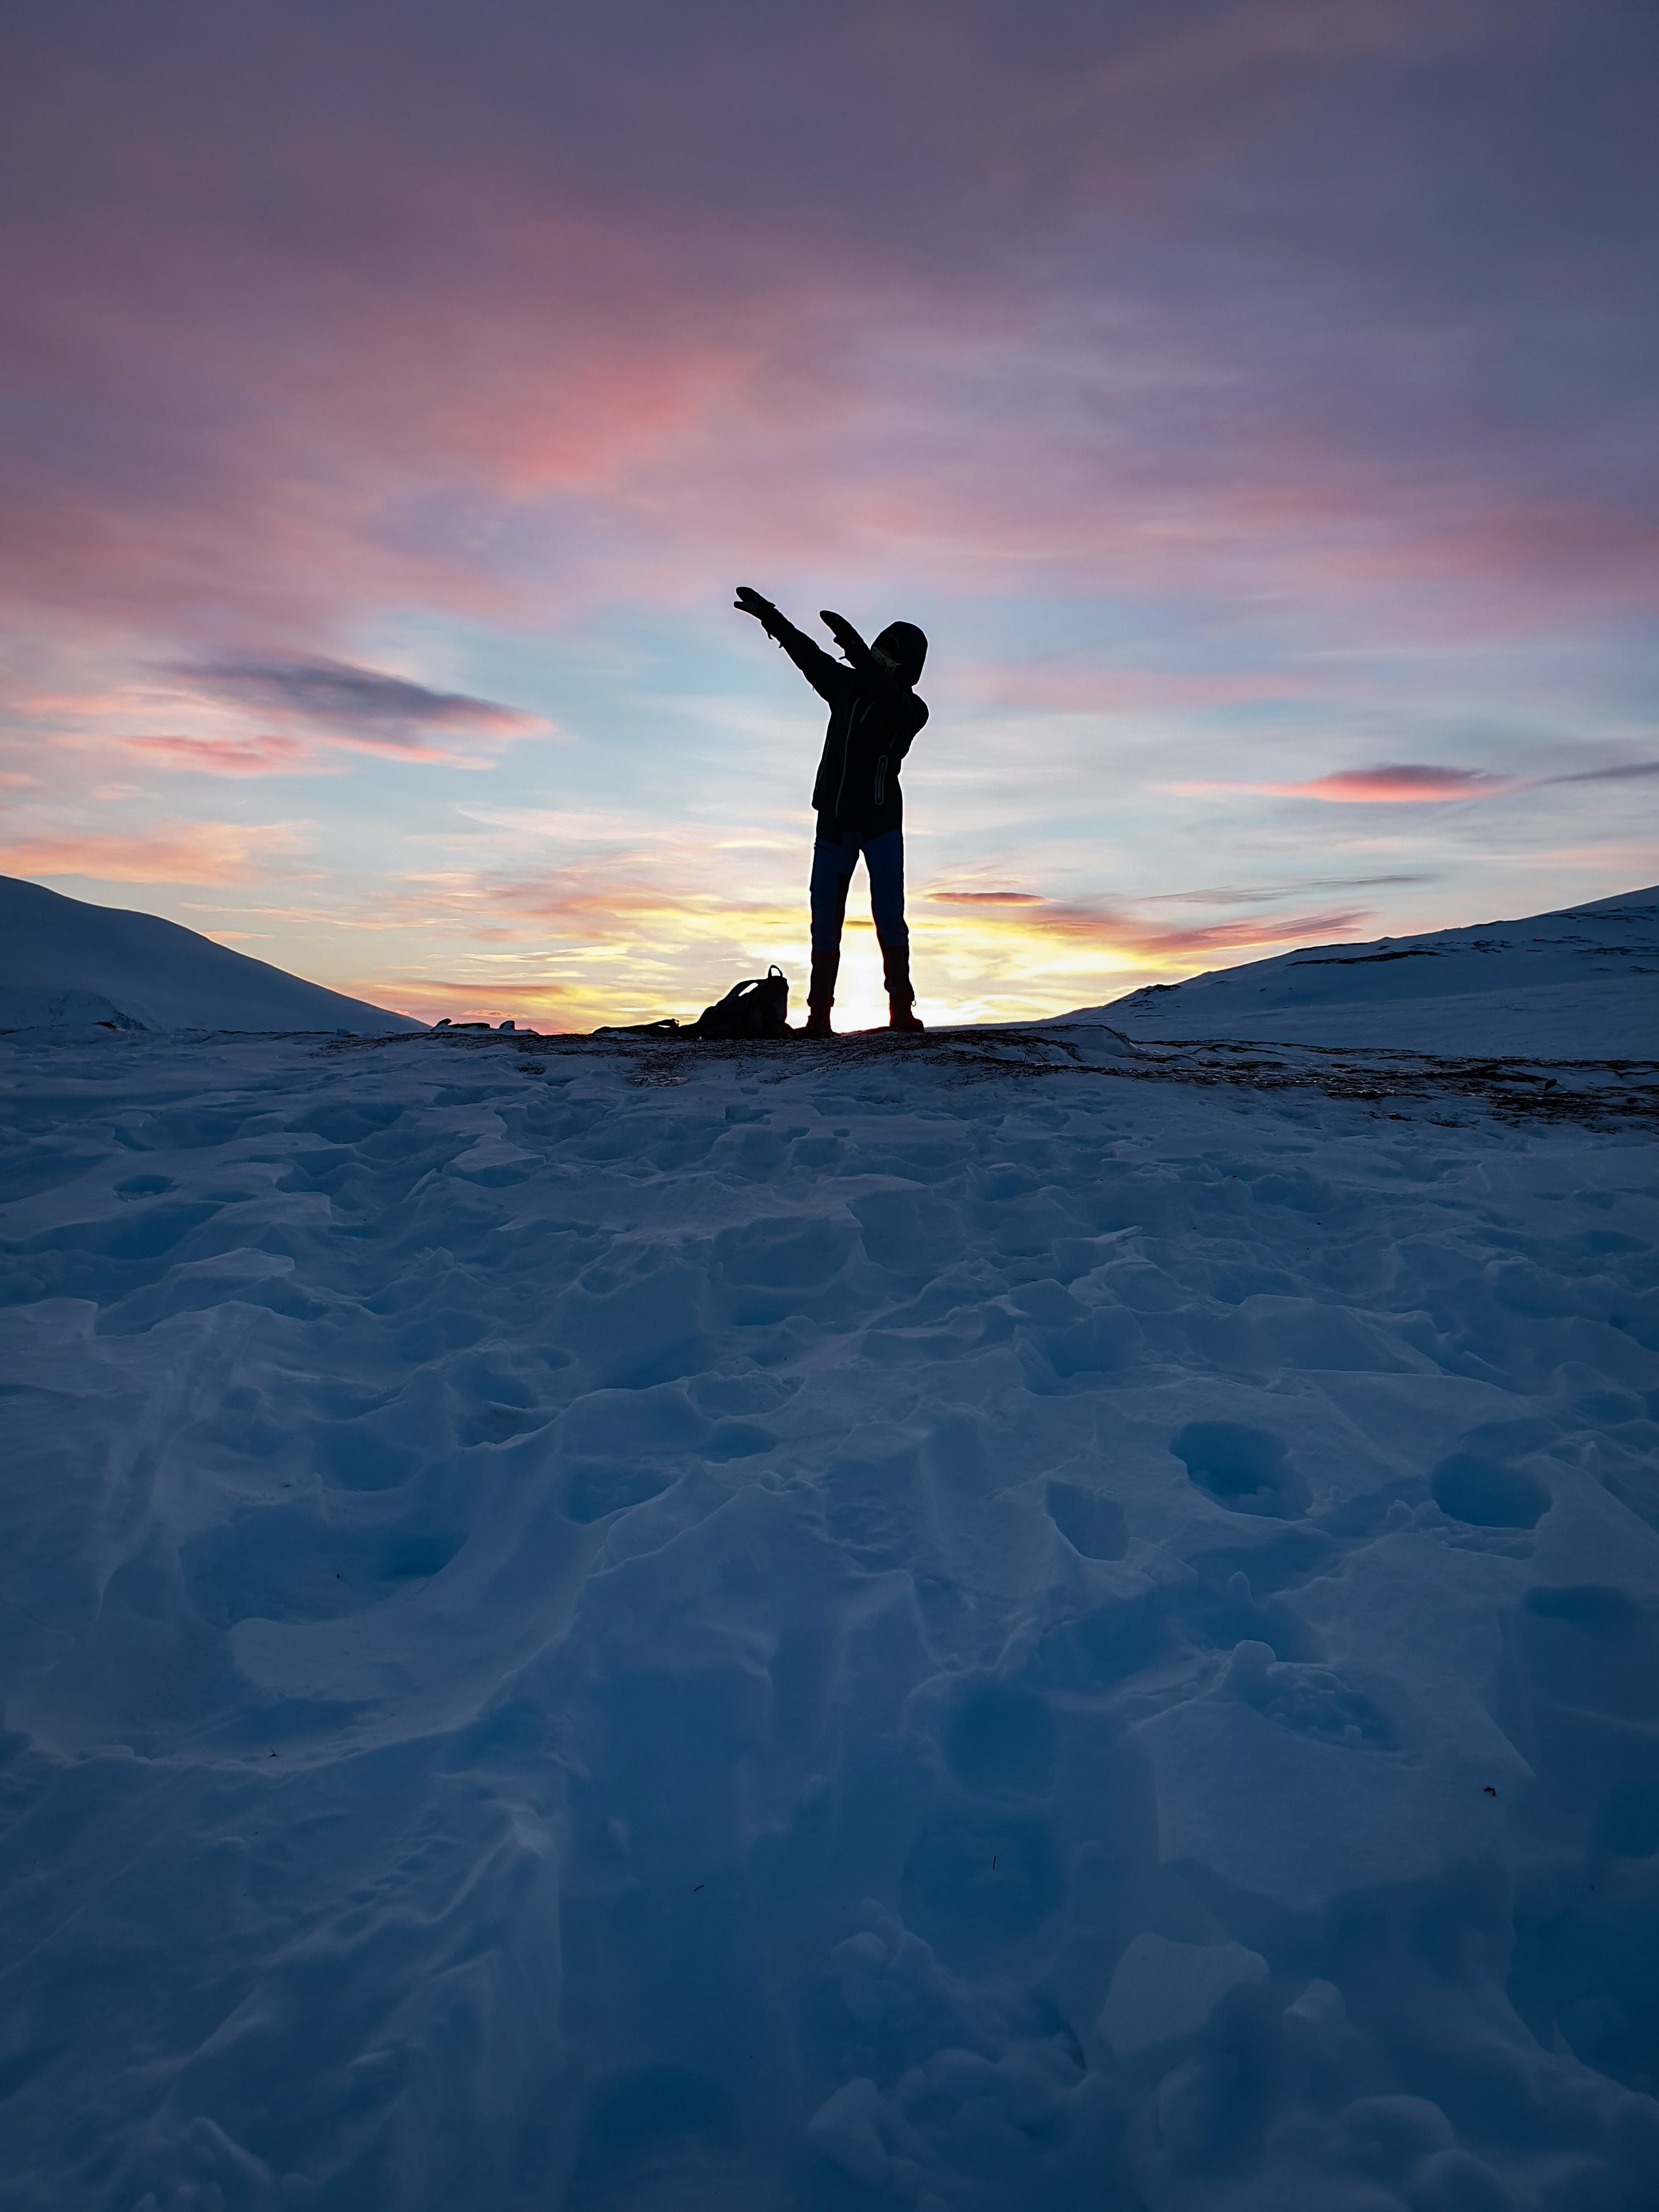 Silhouette Of Person Standing On Snow